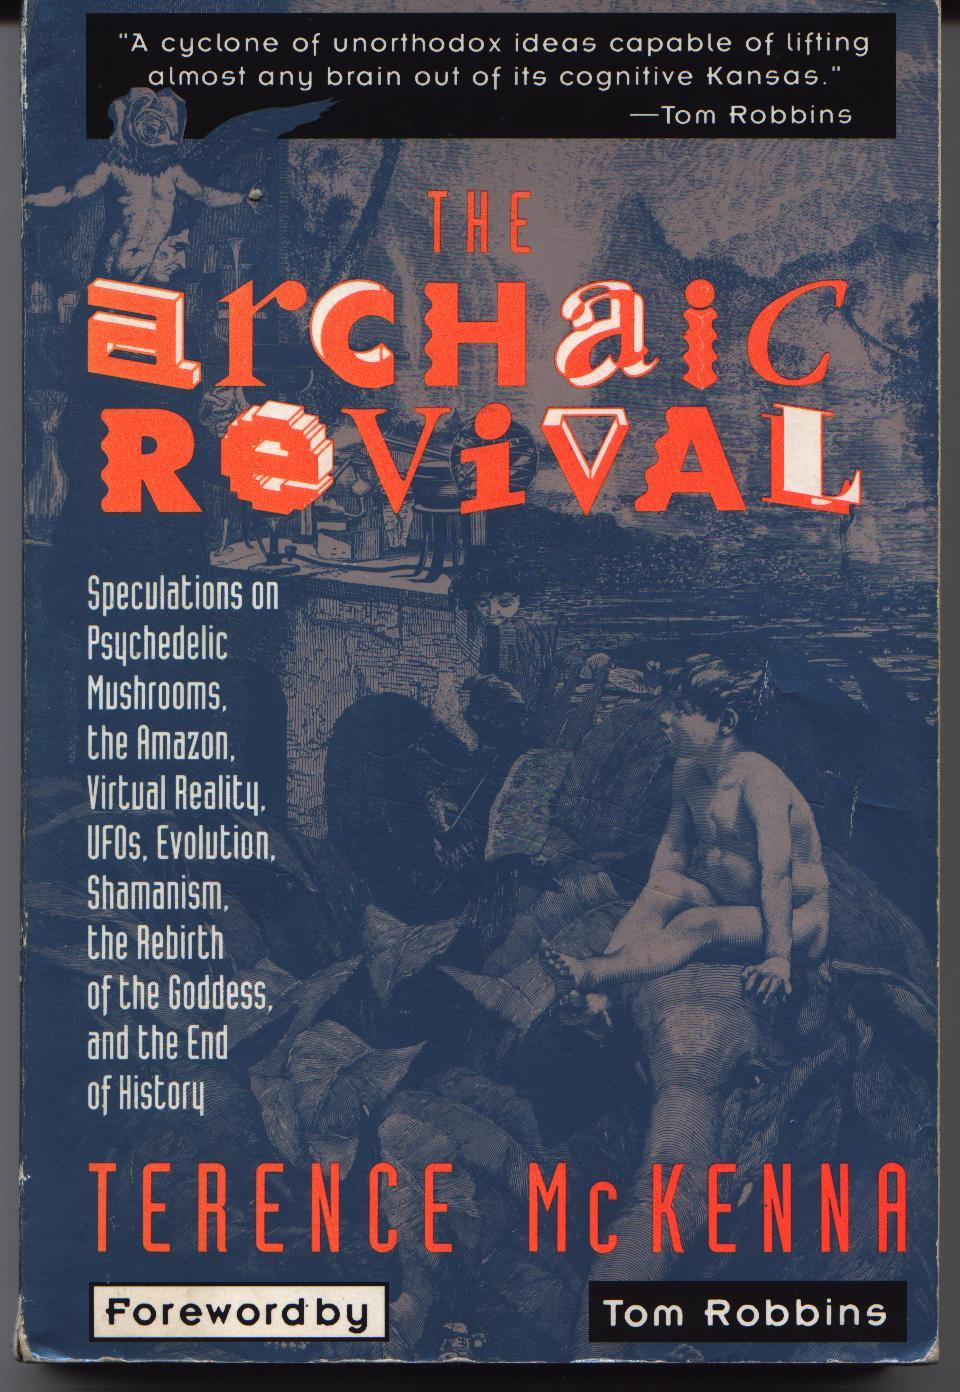 The Archaic Revival: McKenna, Terence (Tom Robbins) (Drugs)